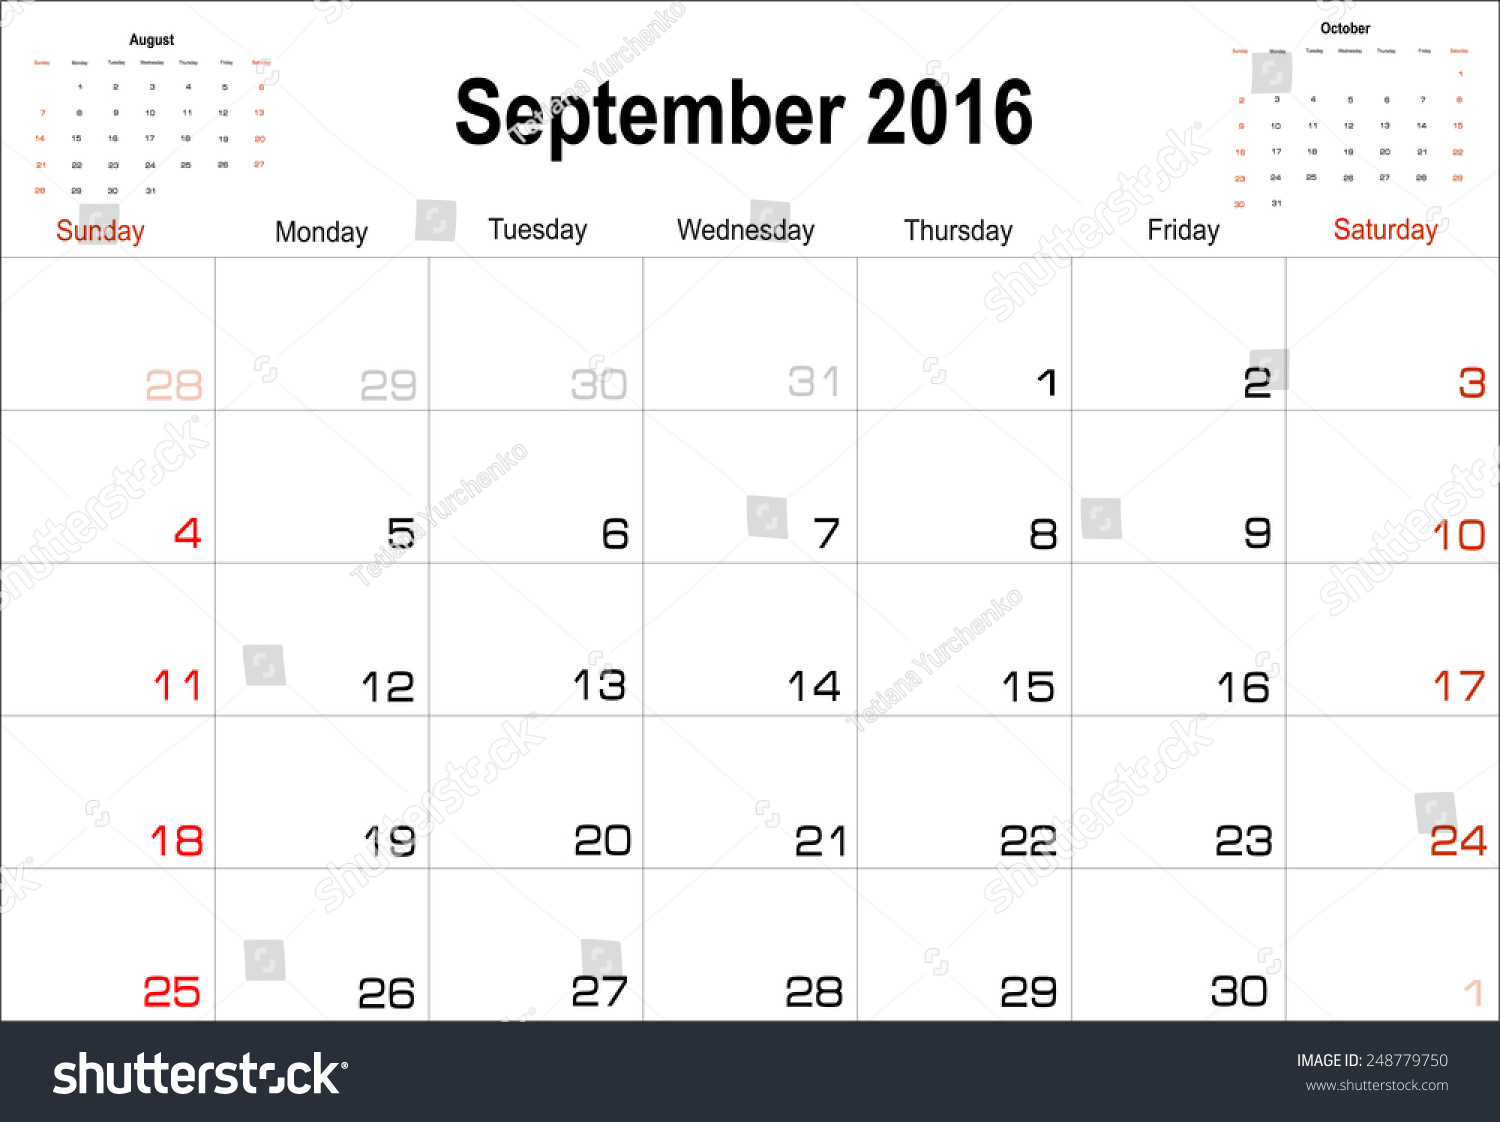 vector planning calendar september 2016 248779750 shutterstock. Black Bedroom Furniture Sets. Home Design Ideas